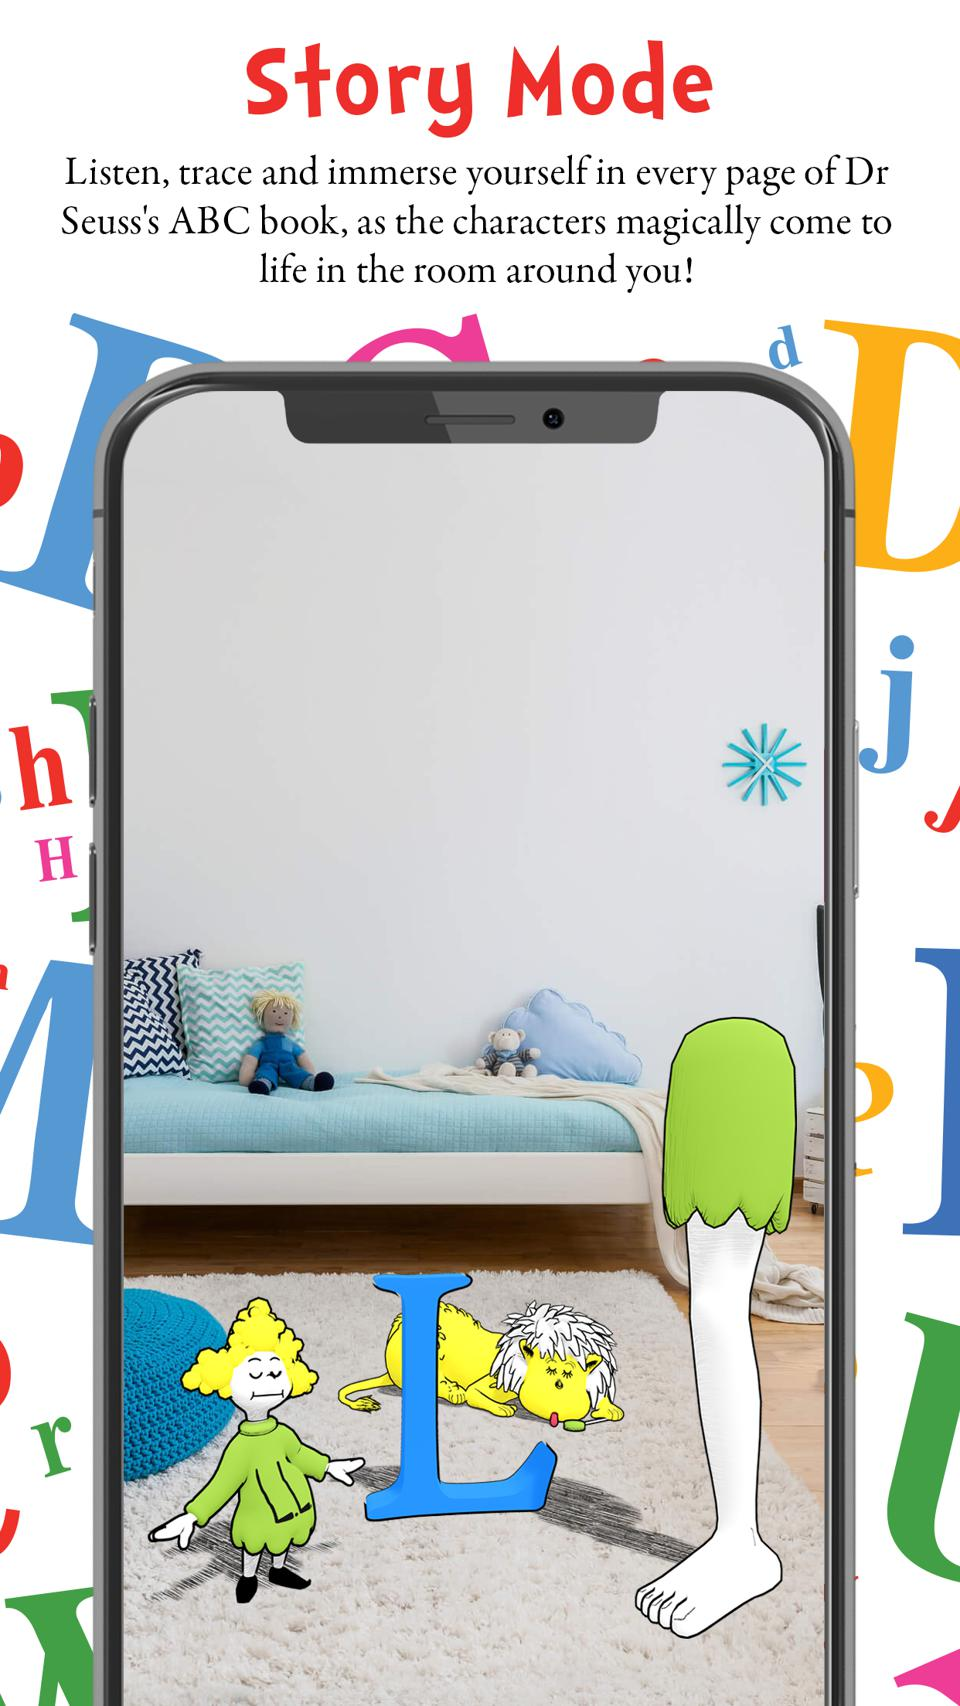 Dr. Seuss Enterprises and Sugar Creative joined forces to create the AR app